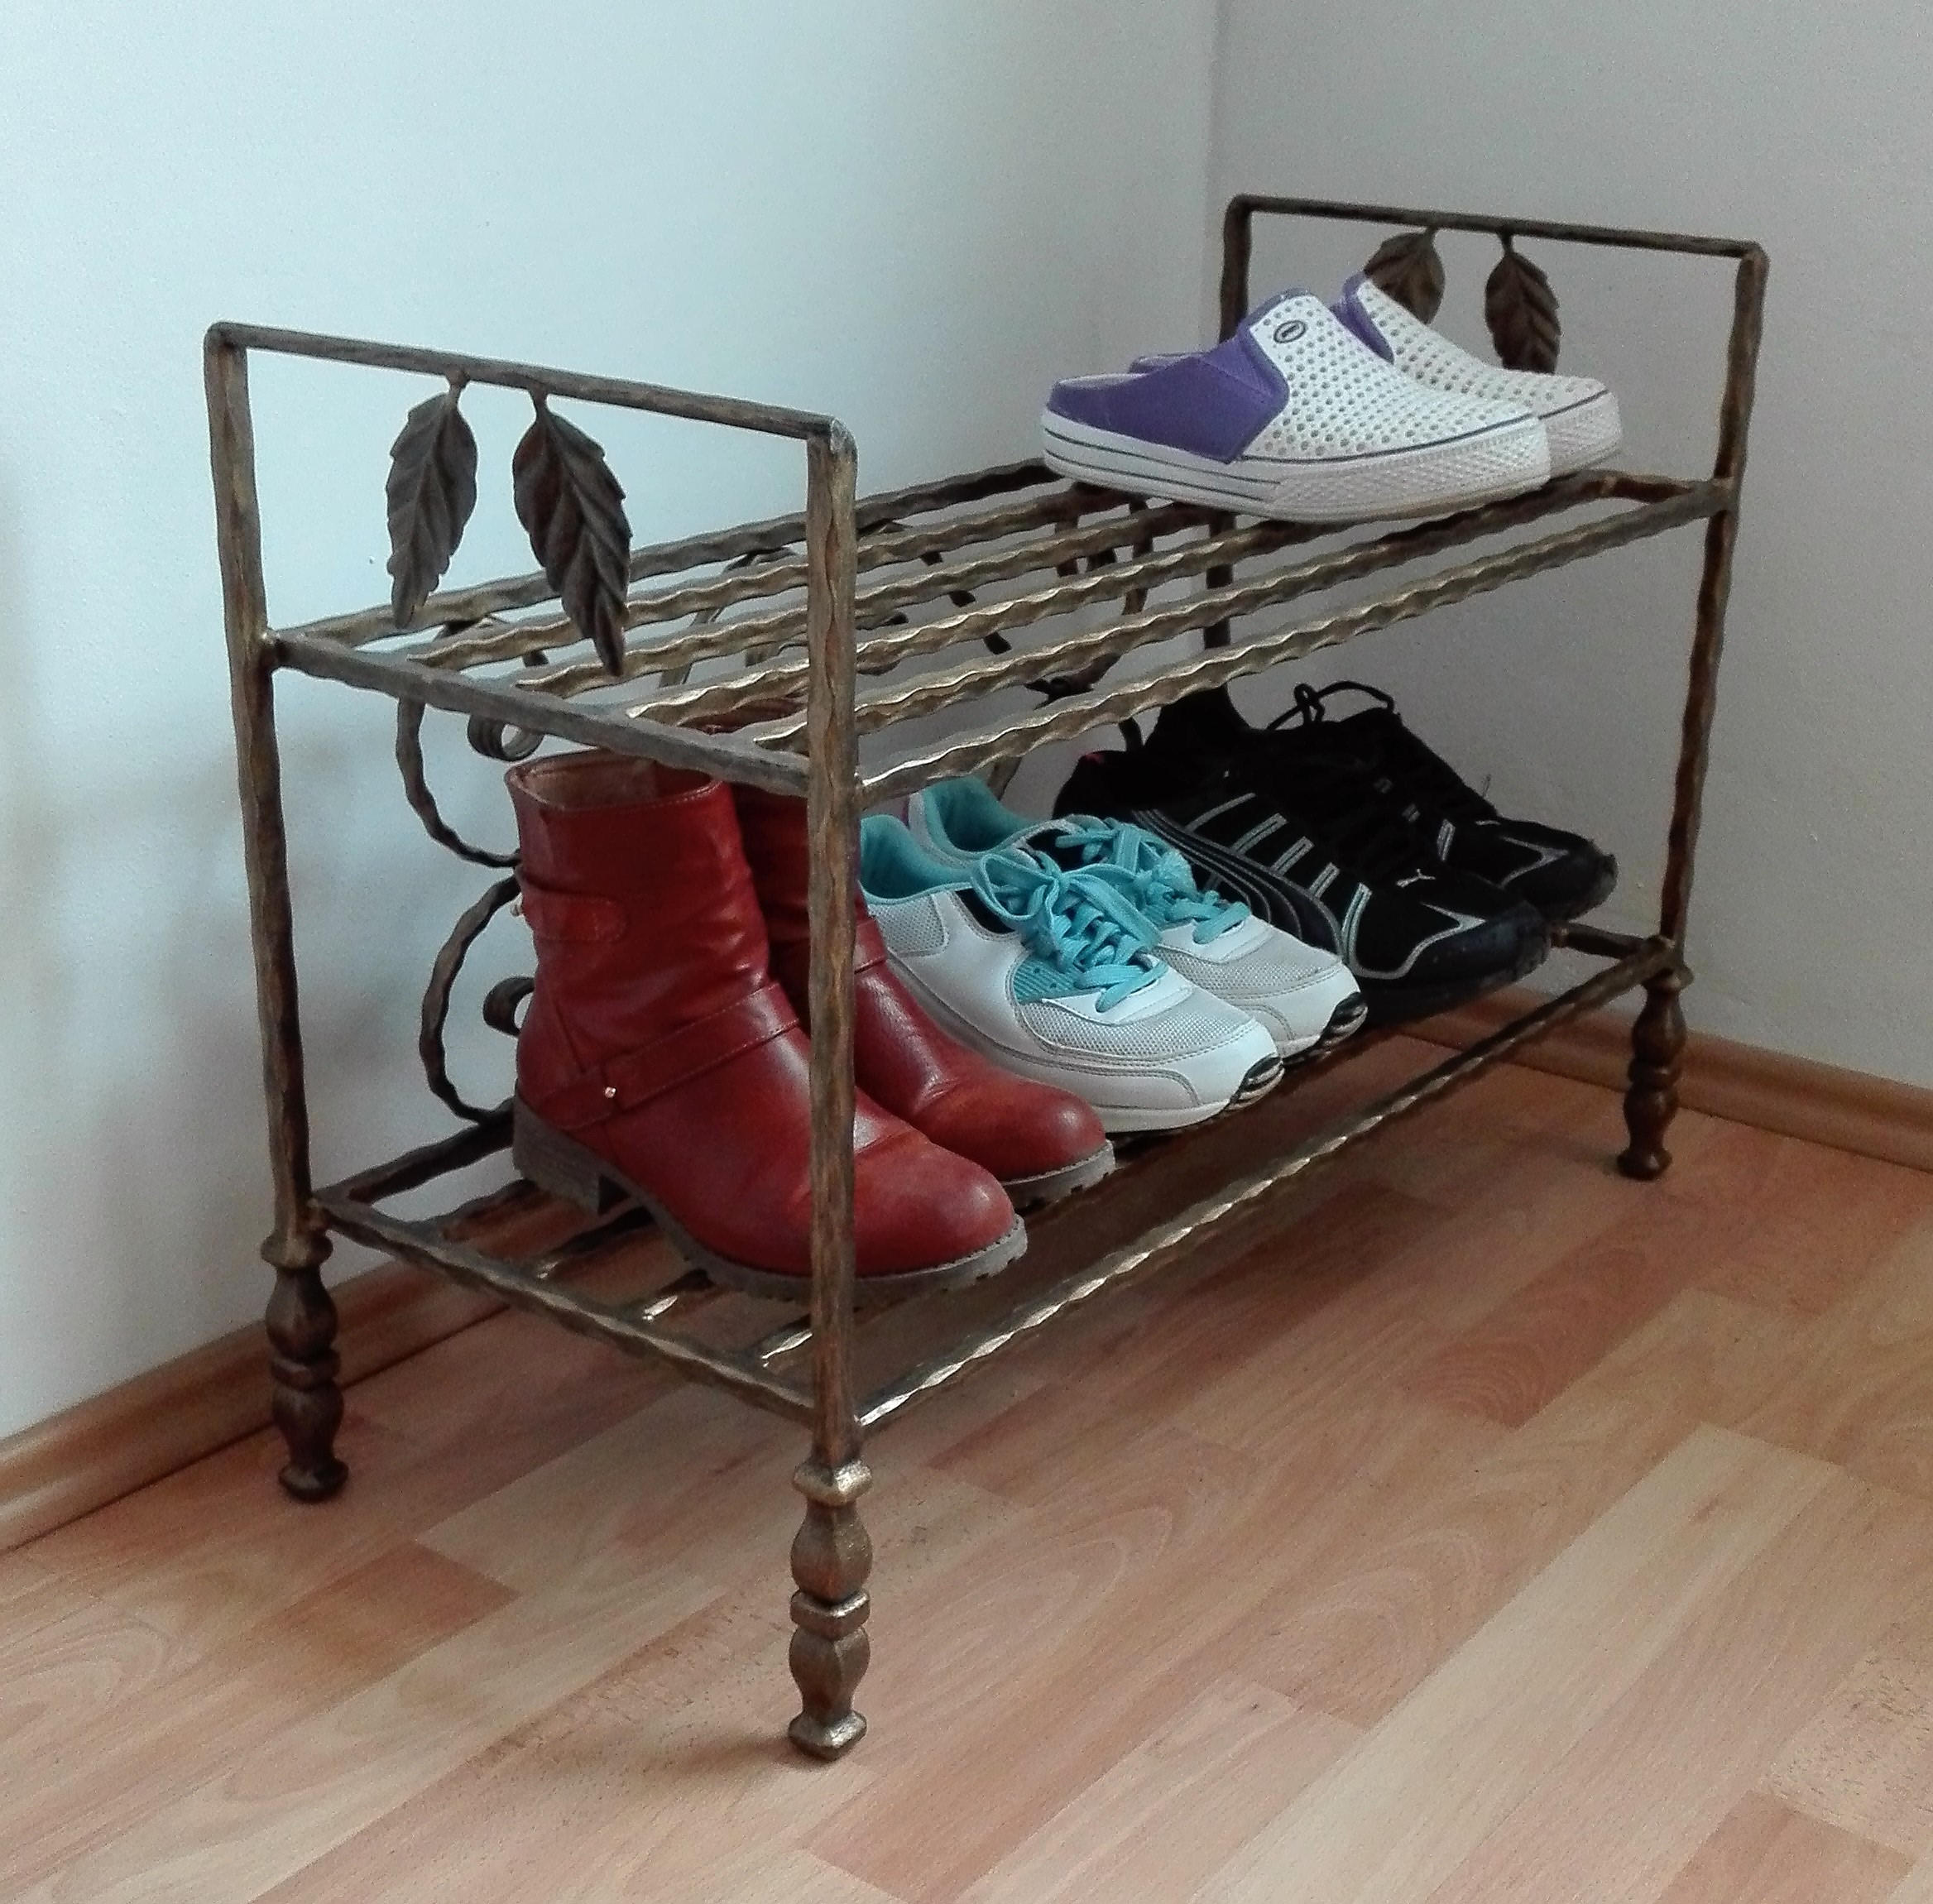 Kovaný botník, Furniture Shoe Rack Organiser Vintage Handmade Shoe Bench Hallway Unit Shoe Storage Stand Schuhregal Organizer Vintage Handgefertigte Schuhbank Flur Einheit Schuhablage Ständer Möbel